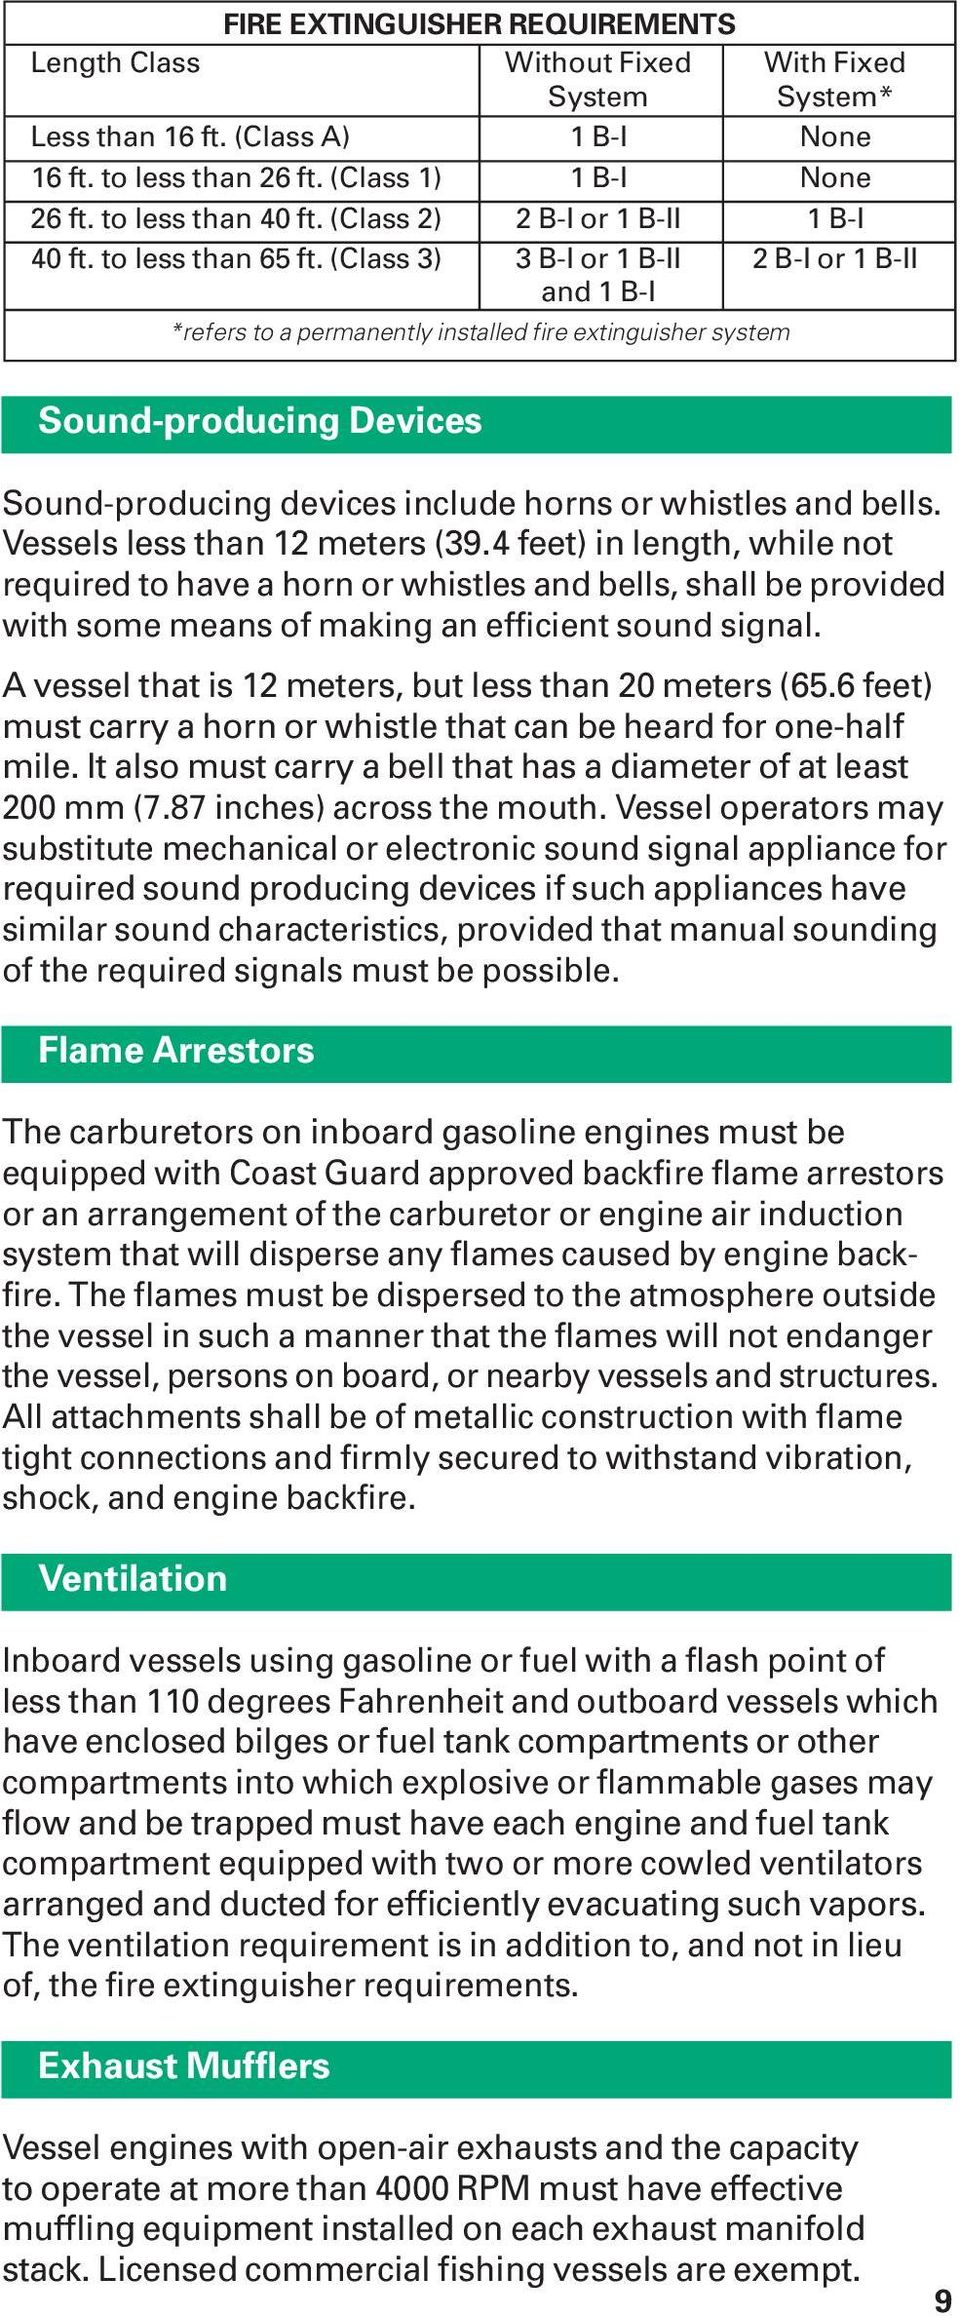 (Class 3) 3 B-I or 1 B-II 2 B-I or 1 B-II and 1 B-I *refers to a permanently installed fire extinguisher system Sound-producing Devices Sound-producing devices include horns or whistles and bells.